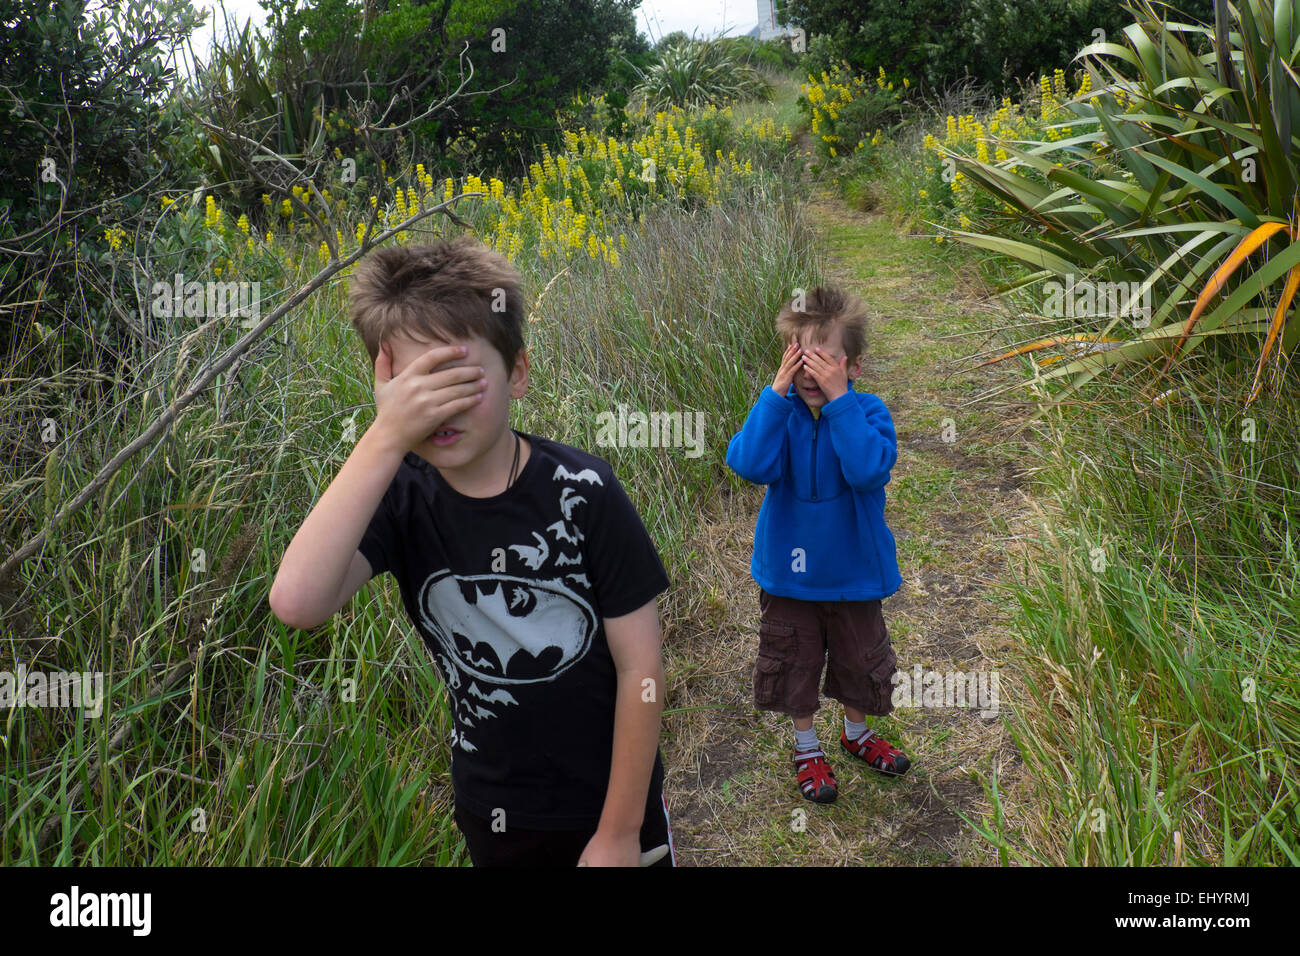 Children playing hide and seek, brothers 4 year old and 6 year old - Stock Image